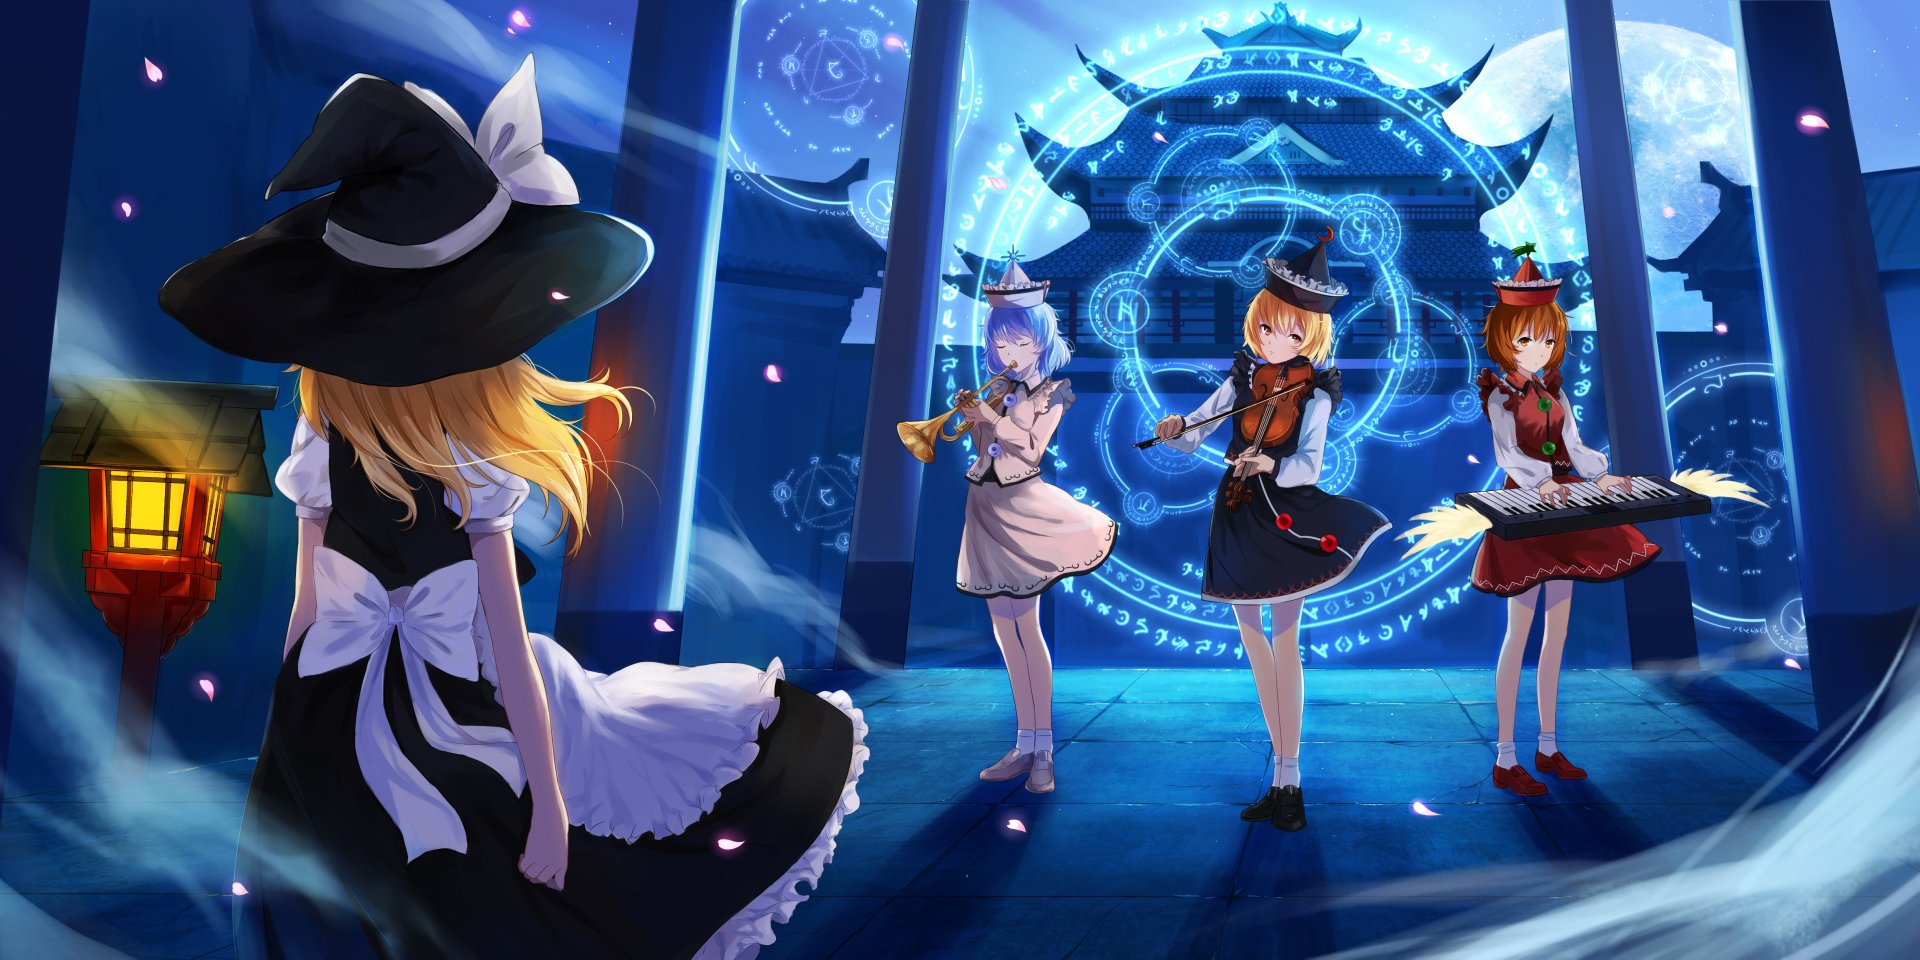 Music Instrument Anime Girls Blue Witch Violin Piano Wallpaper